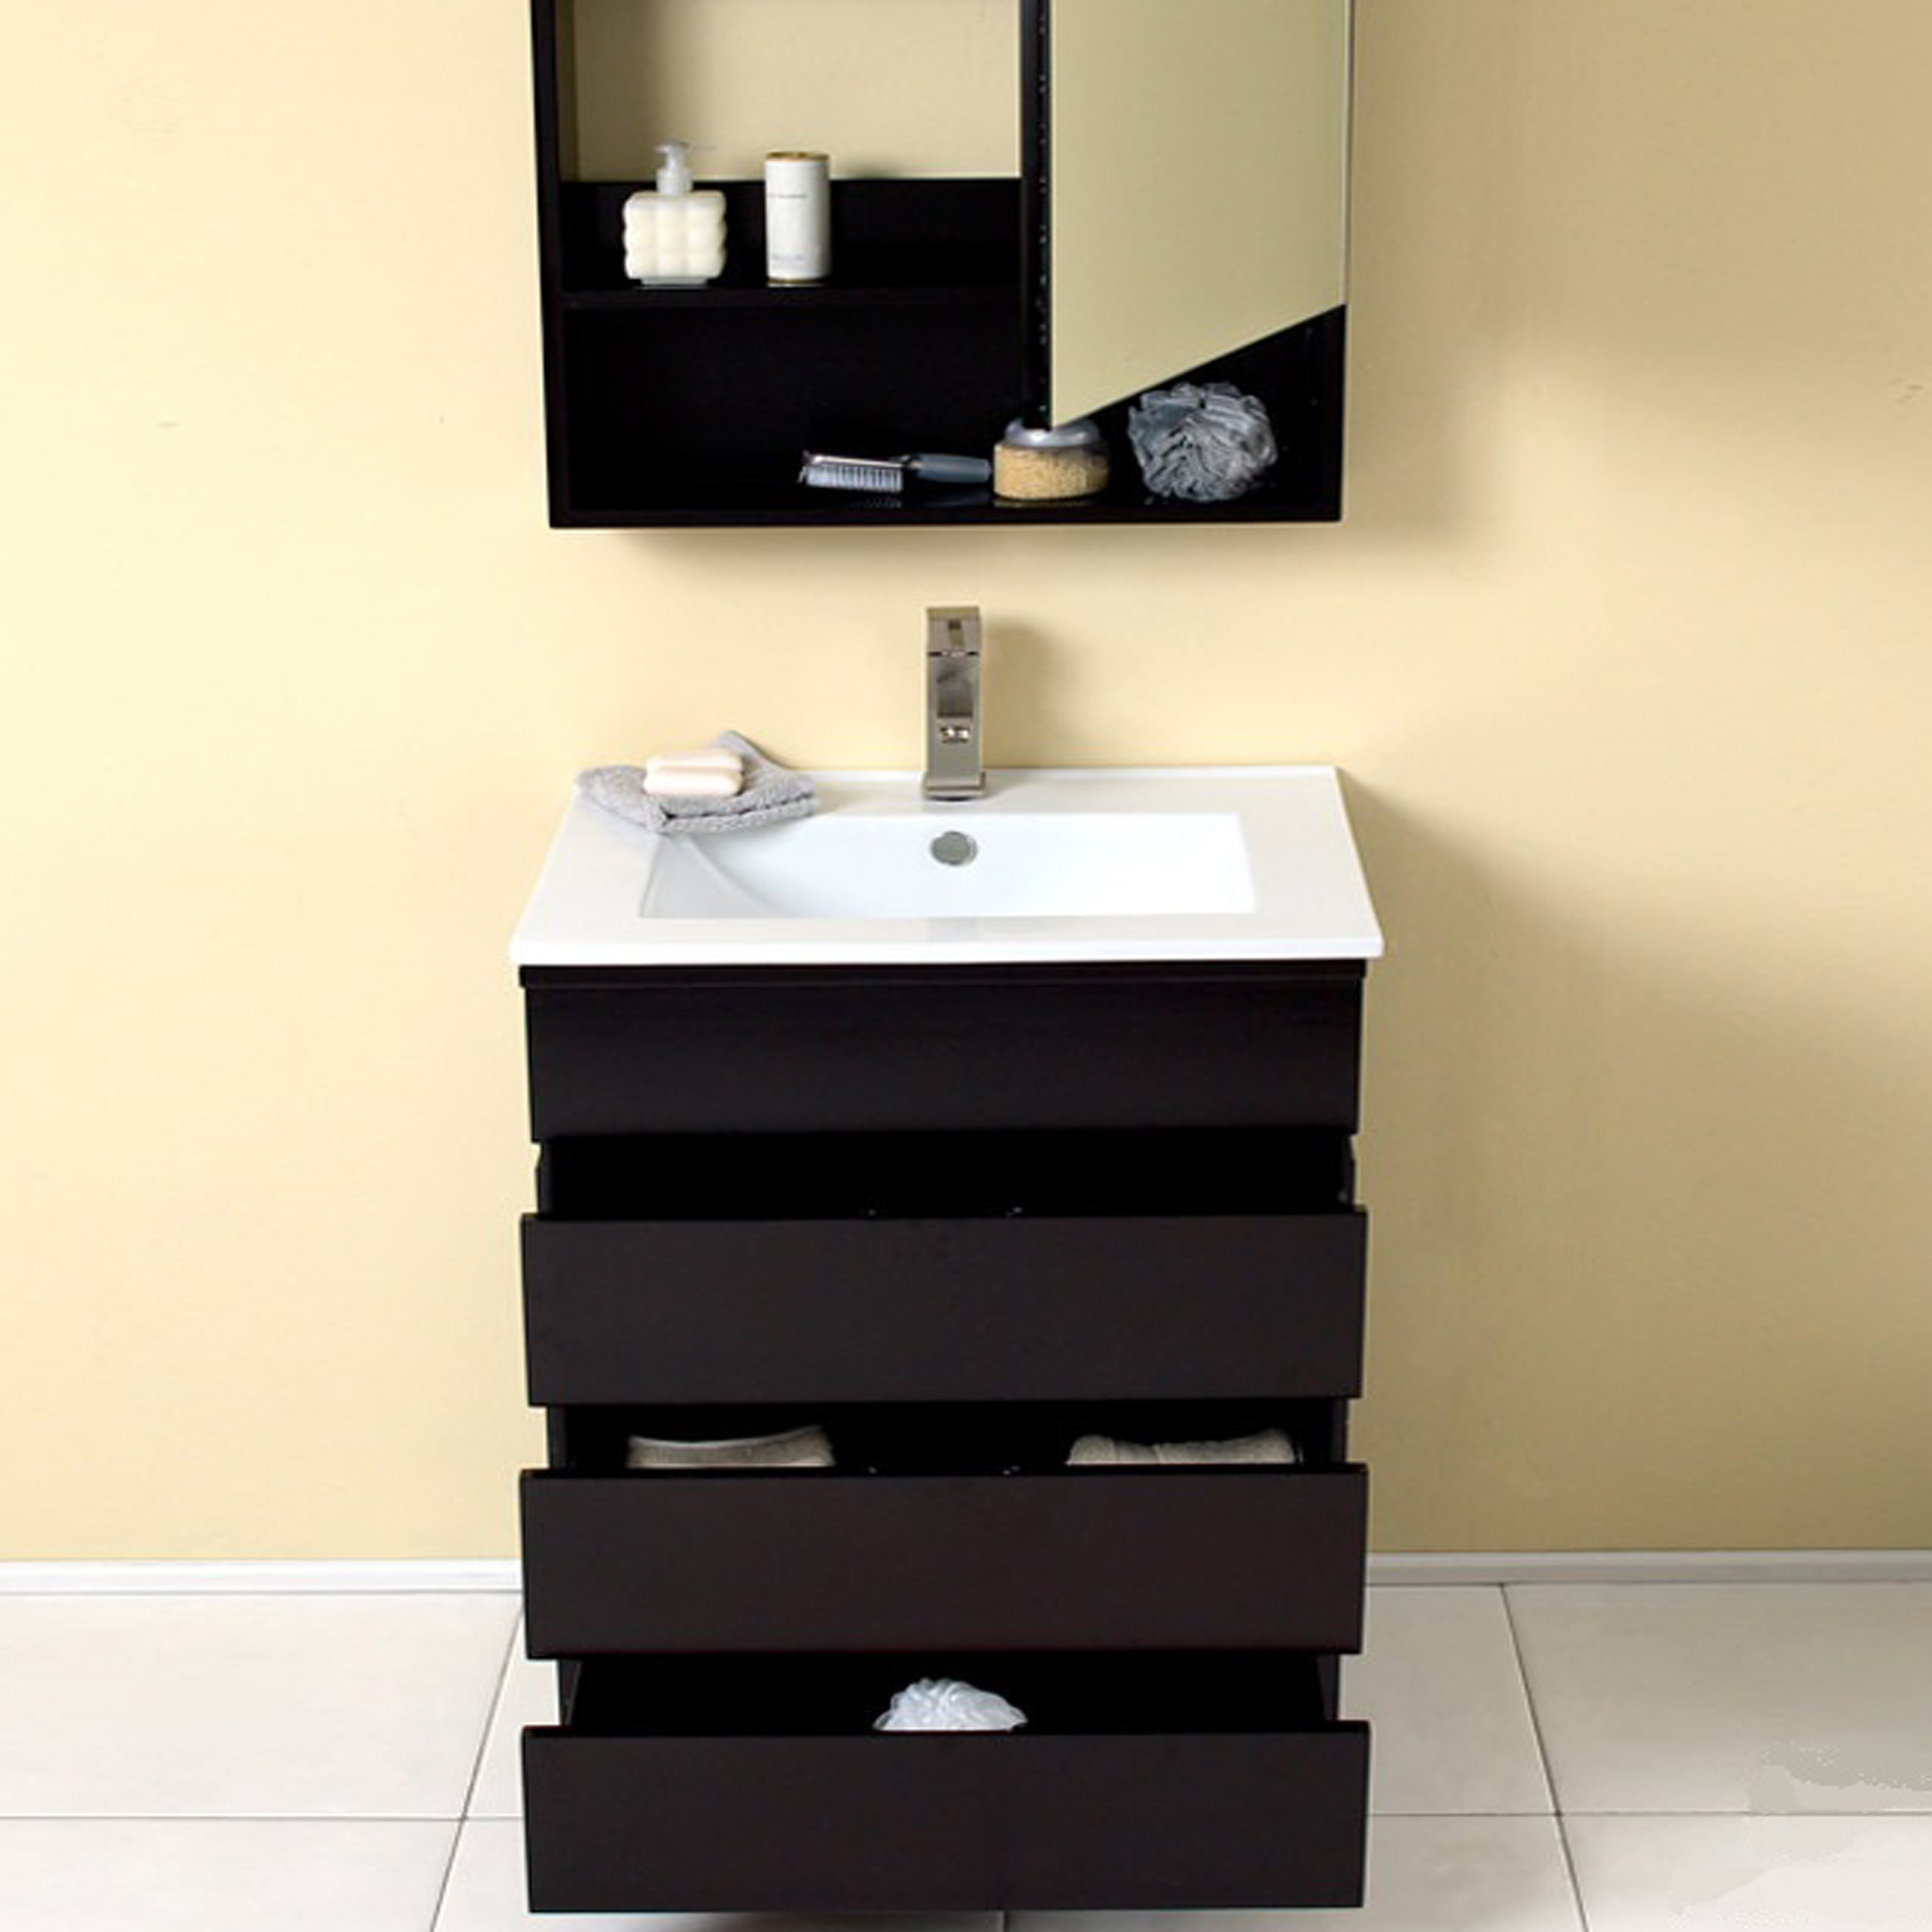 Bathroom Vanity 24 Inch Espresso Evvn149 24es A Main Touch To Zoom 01